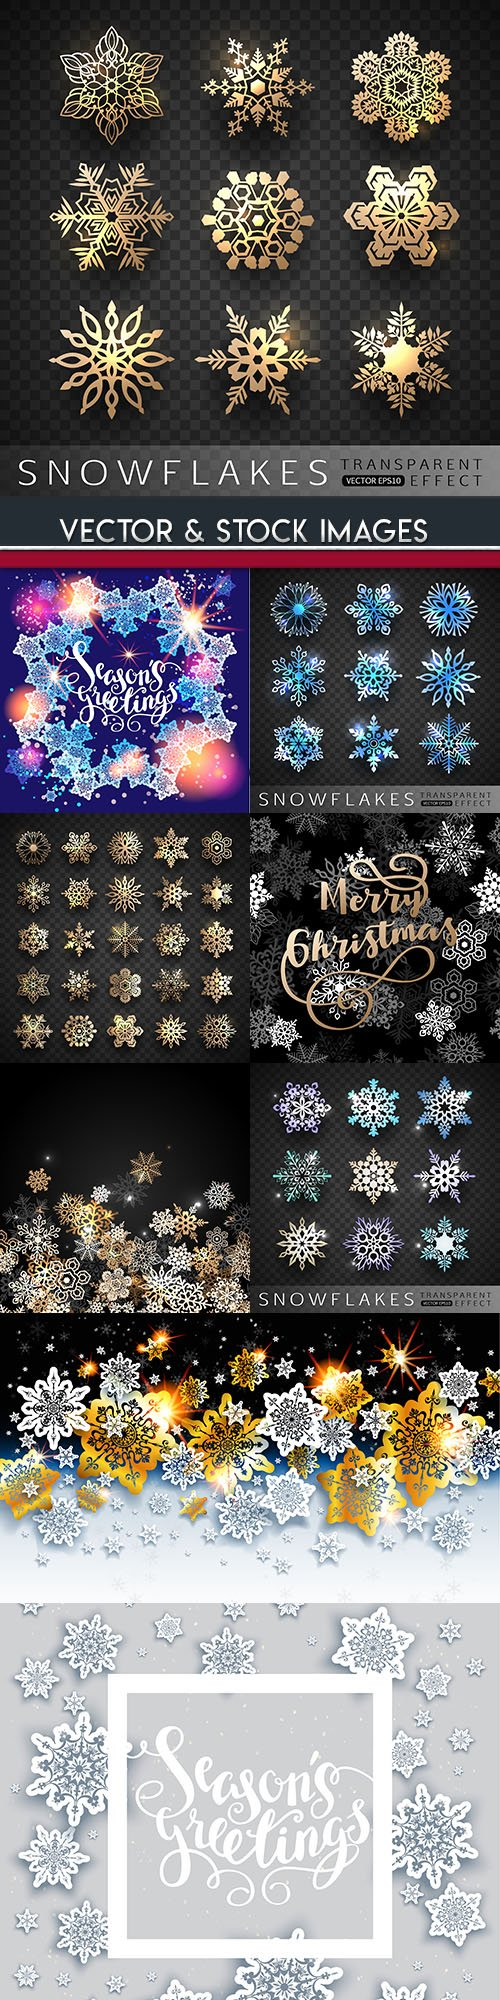 Snowflakes gold and silver Christmas backgrounds